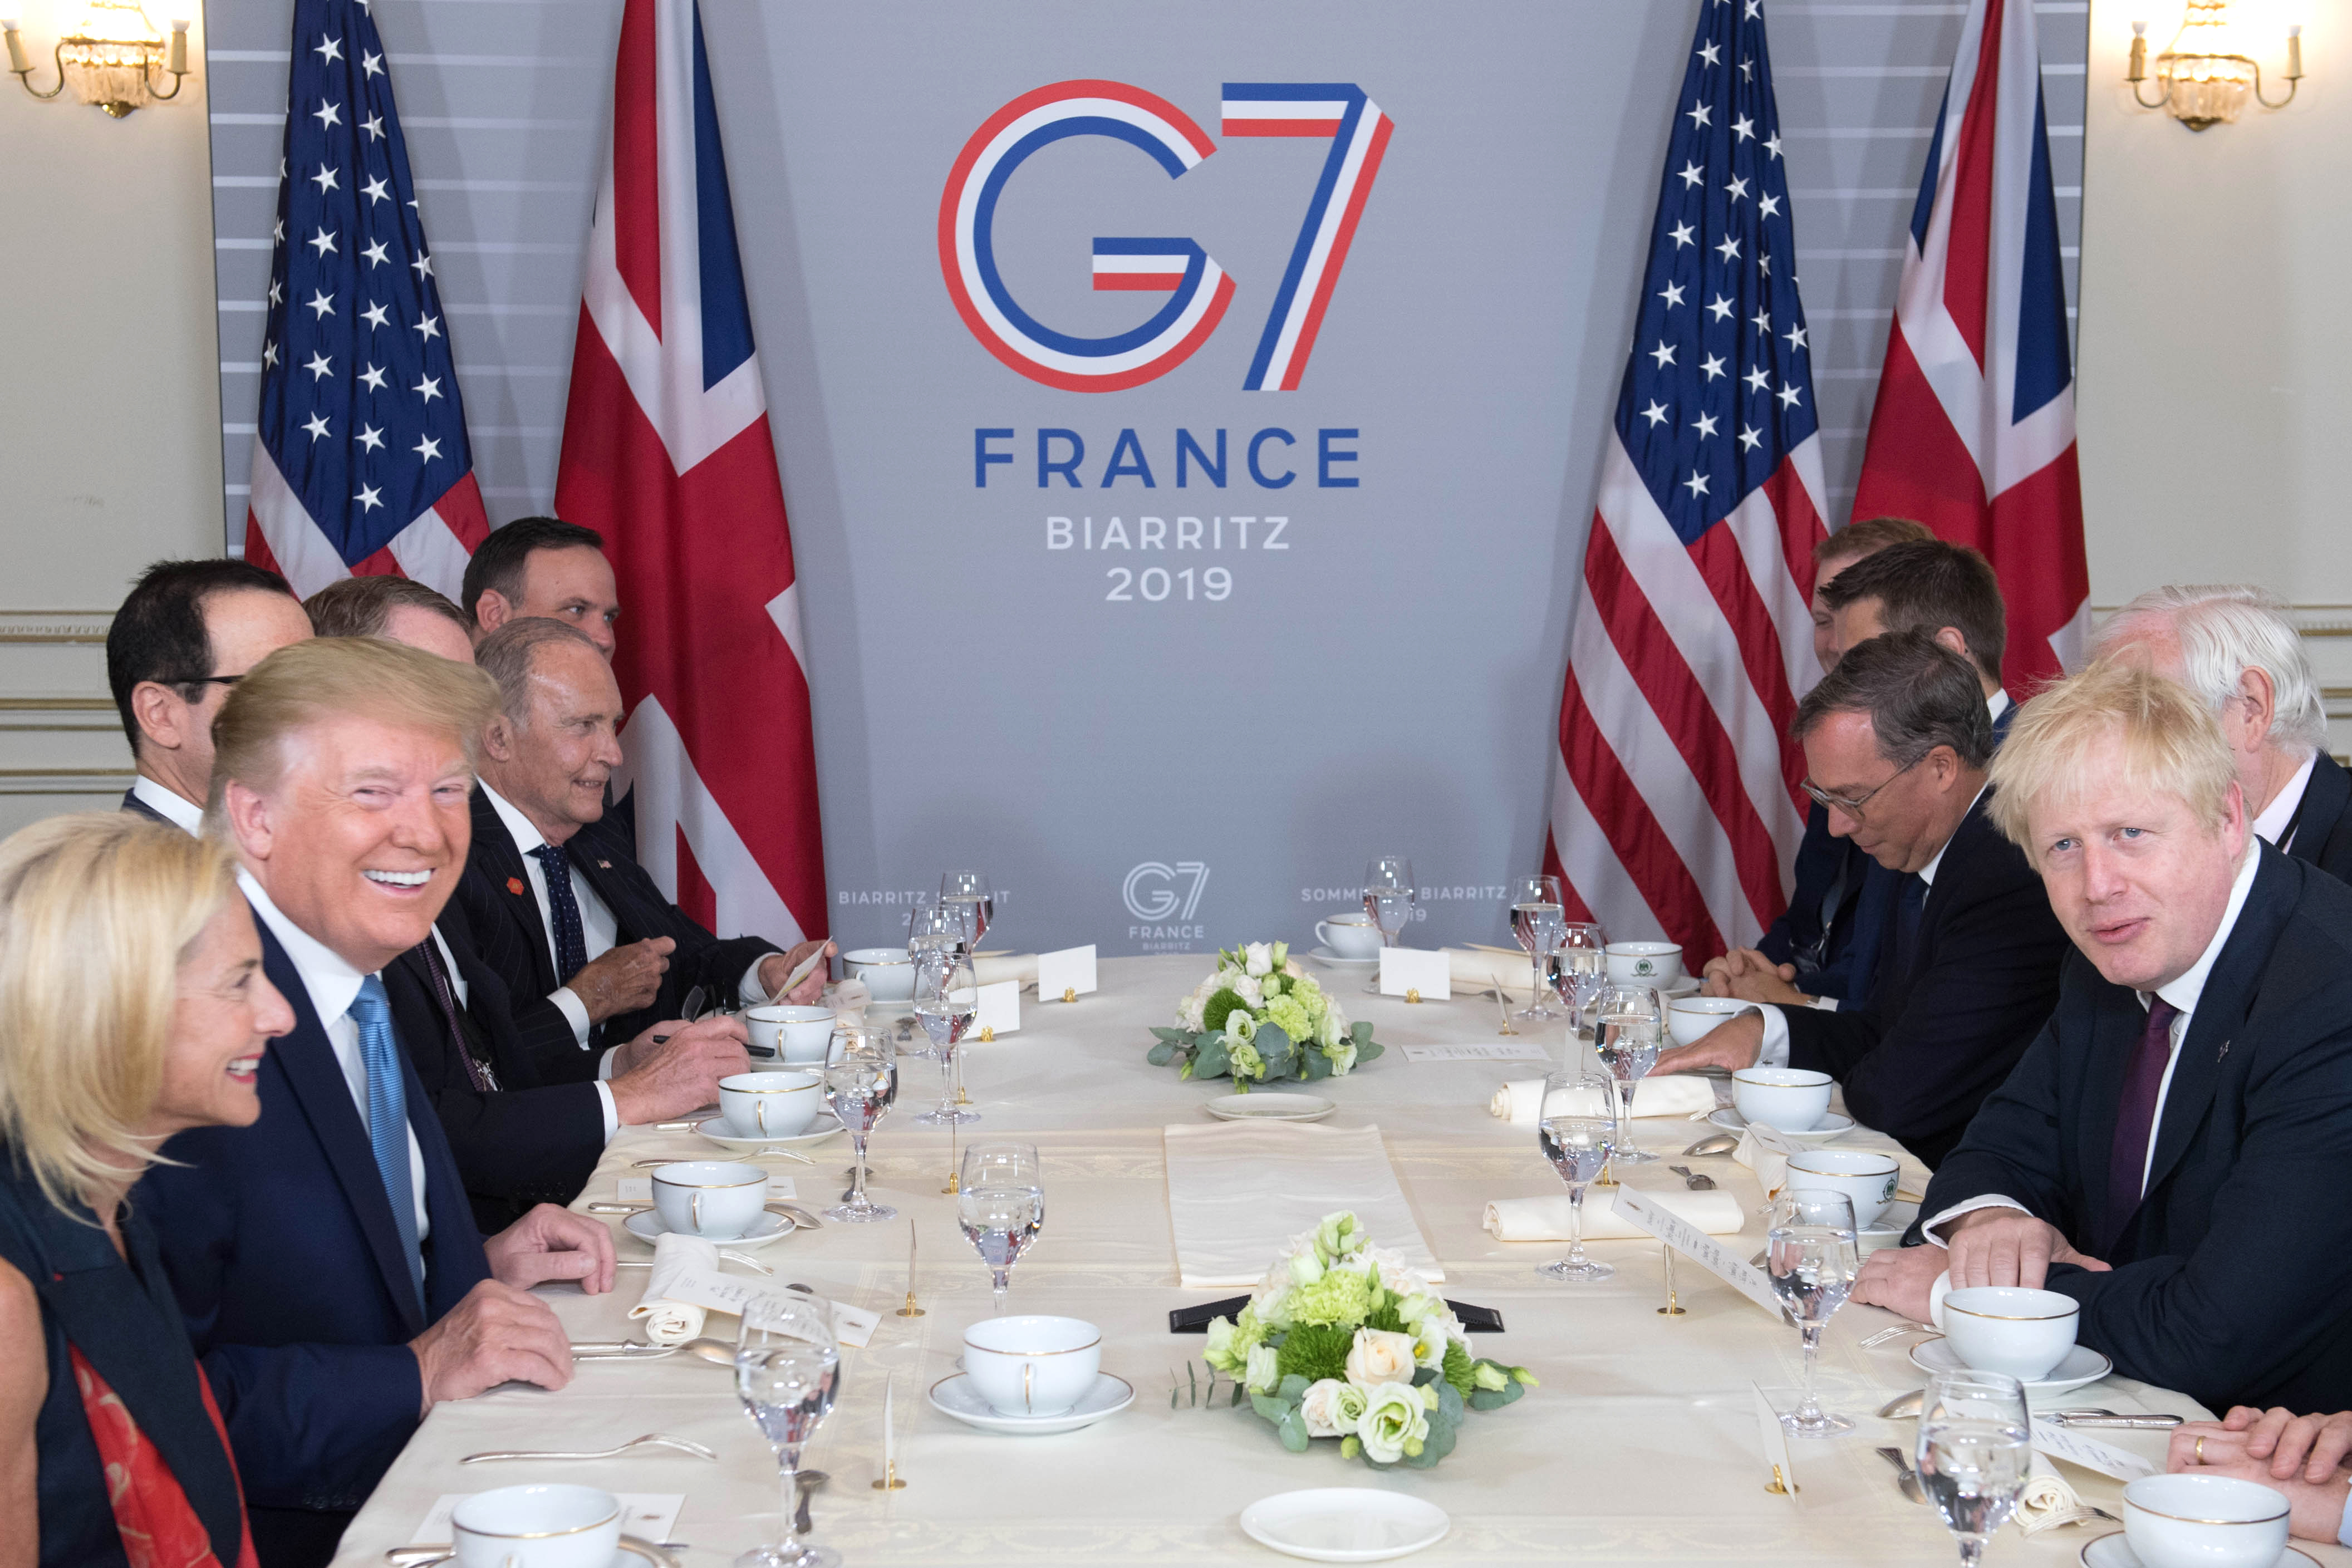 BIARRITZ, FRANCE - AUGUST 25: U.S. President Donald Trump and Britain's Prime Minister Boris Johnson attend a bilateral meeting during the G7 summit on August 25, 2019 in Biarritz, France. The French southwestern seaside resort of Biarritz is hosting the 45th G7 summit from August 24 to 26. High on the agenda will be the climate emergency, the US-China trade war, Britain's departure from the EU, and emergency talks on the Amazon wildfire crisis. (Photo by Stefan Rousseau - Pool/Getty Images)